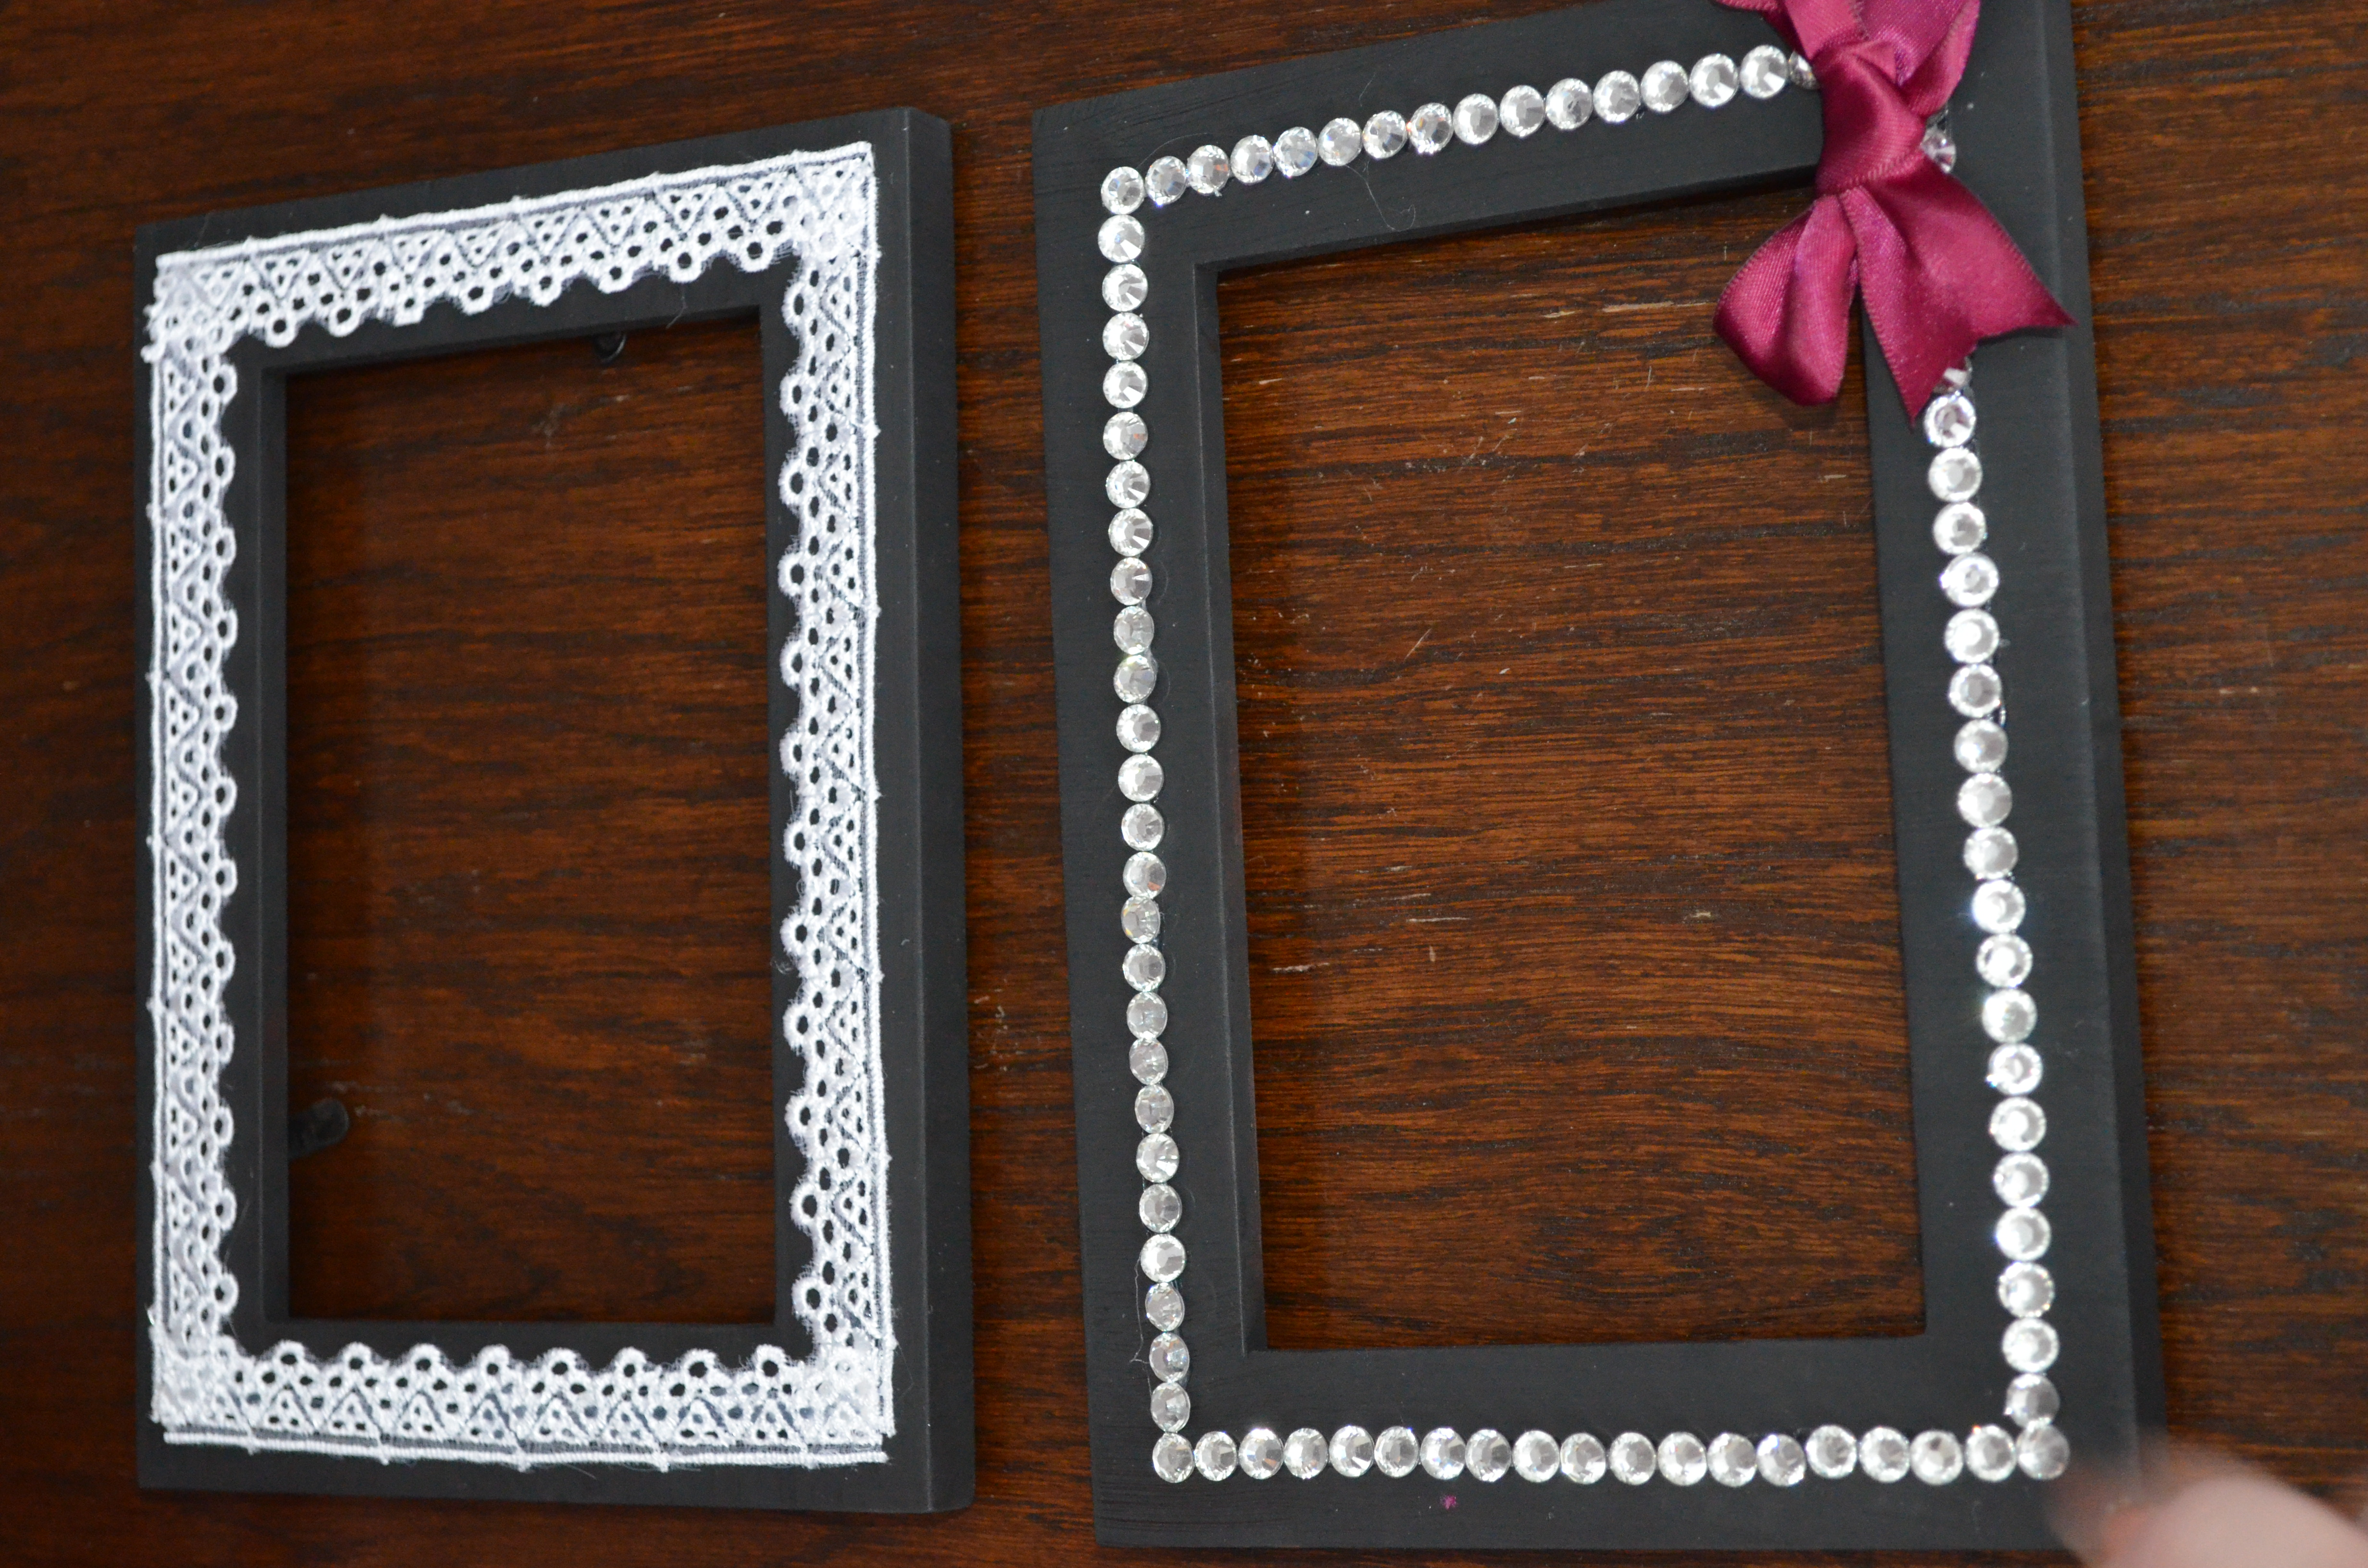 How To Decorate Picture Frames With Ribbon - Easy Craft Ideas